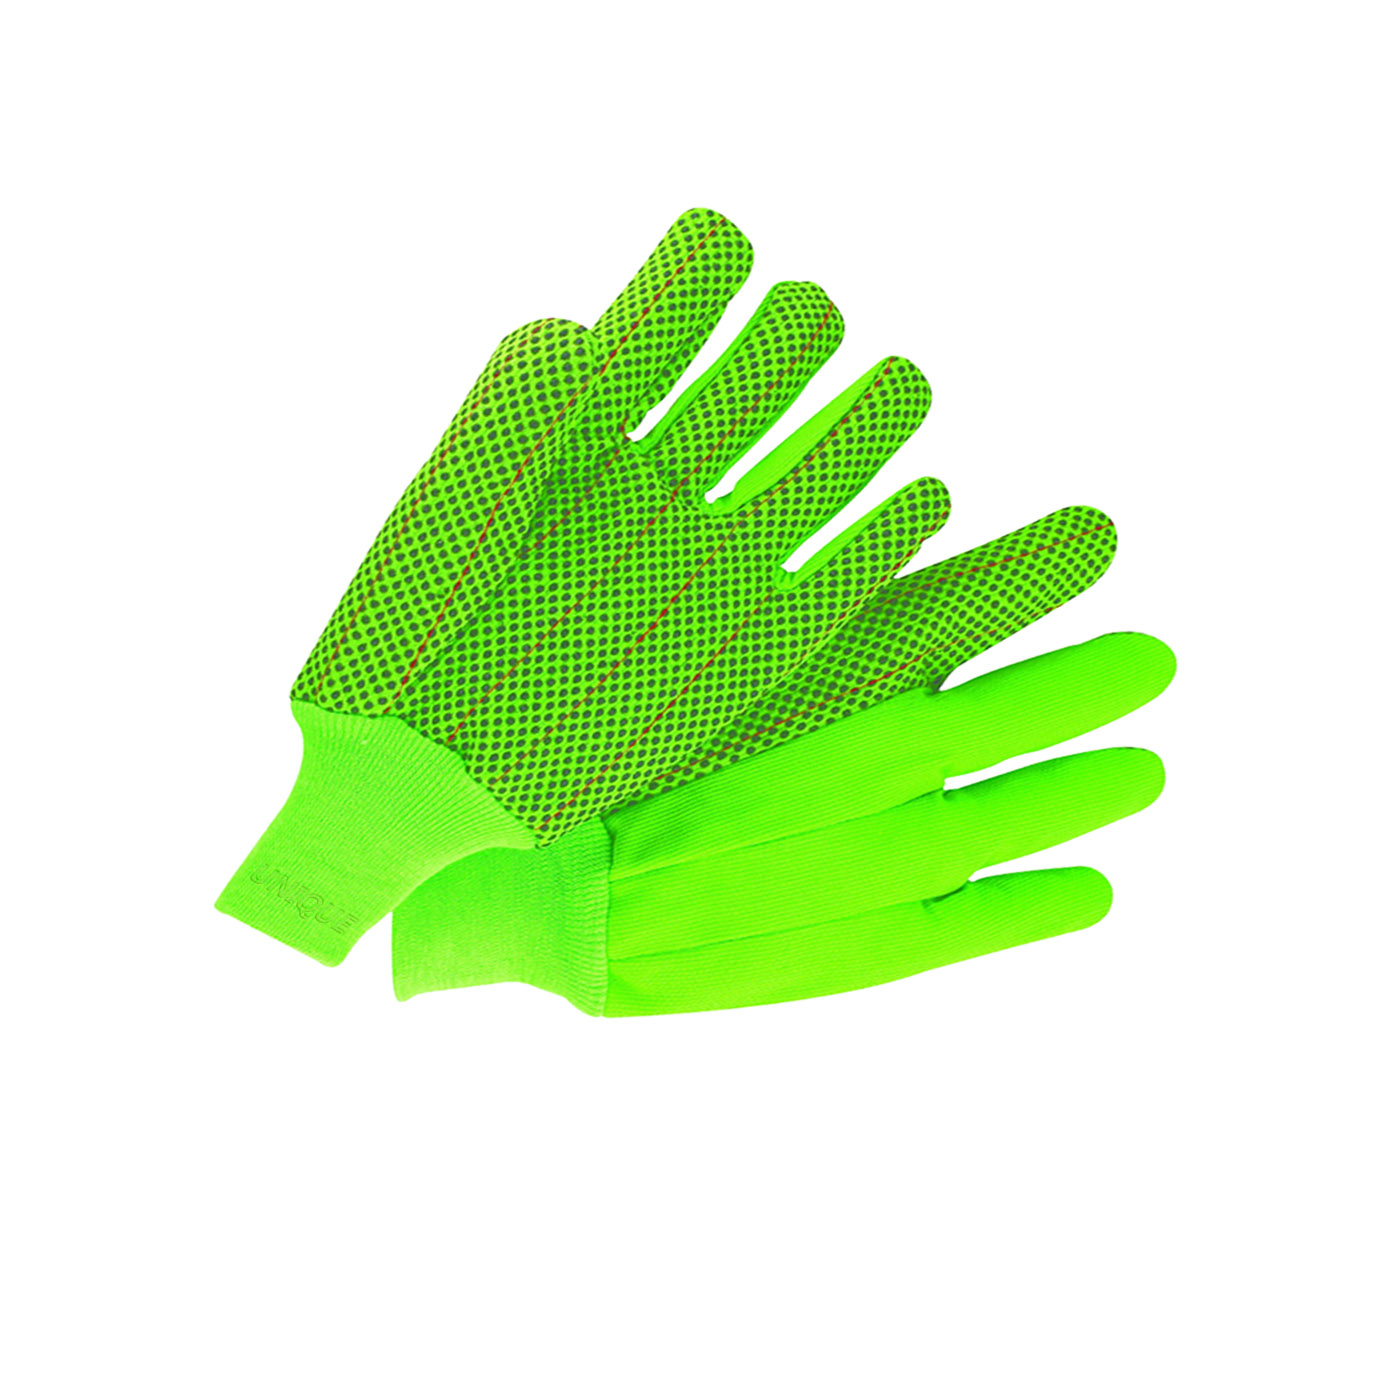 Pvc Dotted Palm For Added Grip